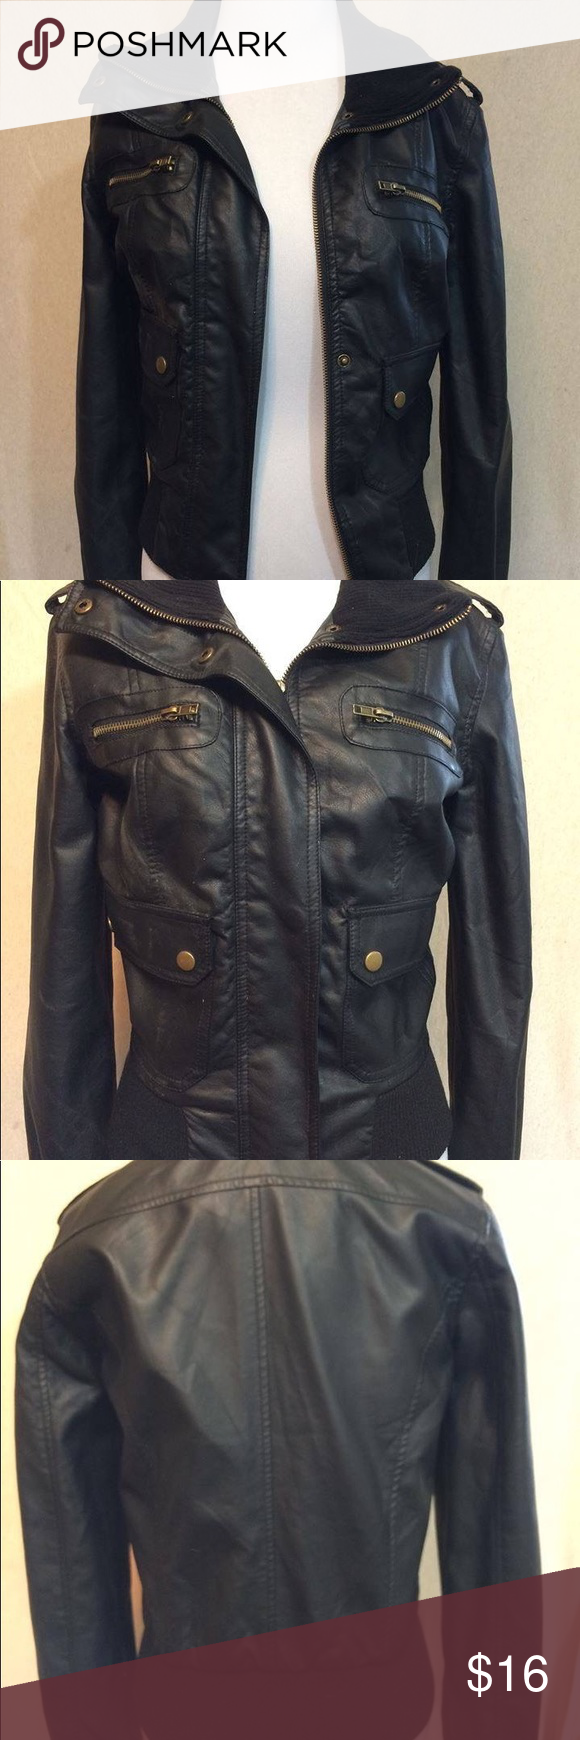 Nwot Black Bomber Jacket Black Bomber Jacket Black Bomber Ambiance Apparel [ 1740 x 580 Pixel ]